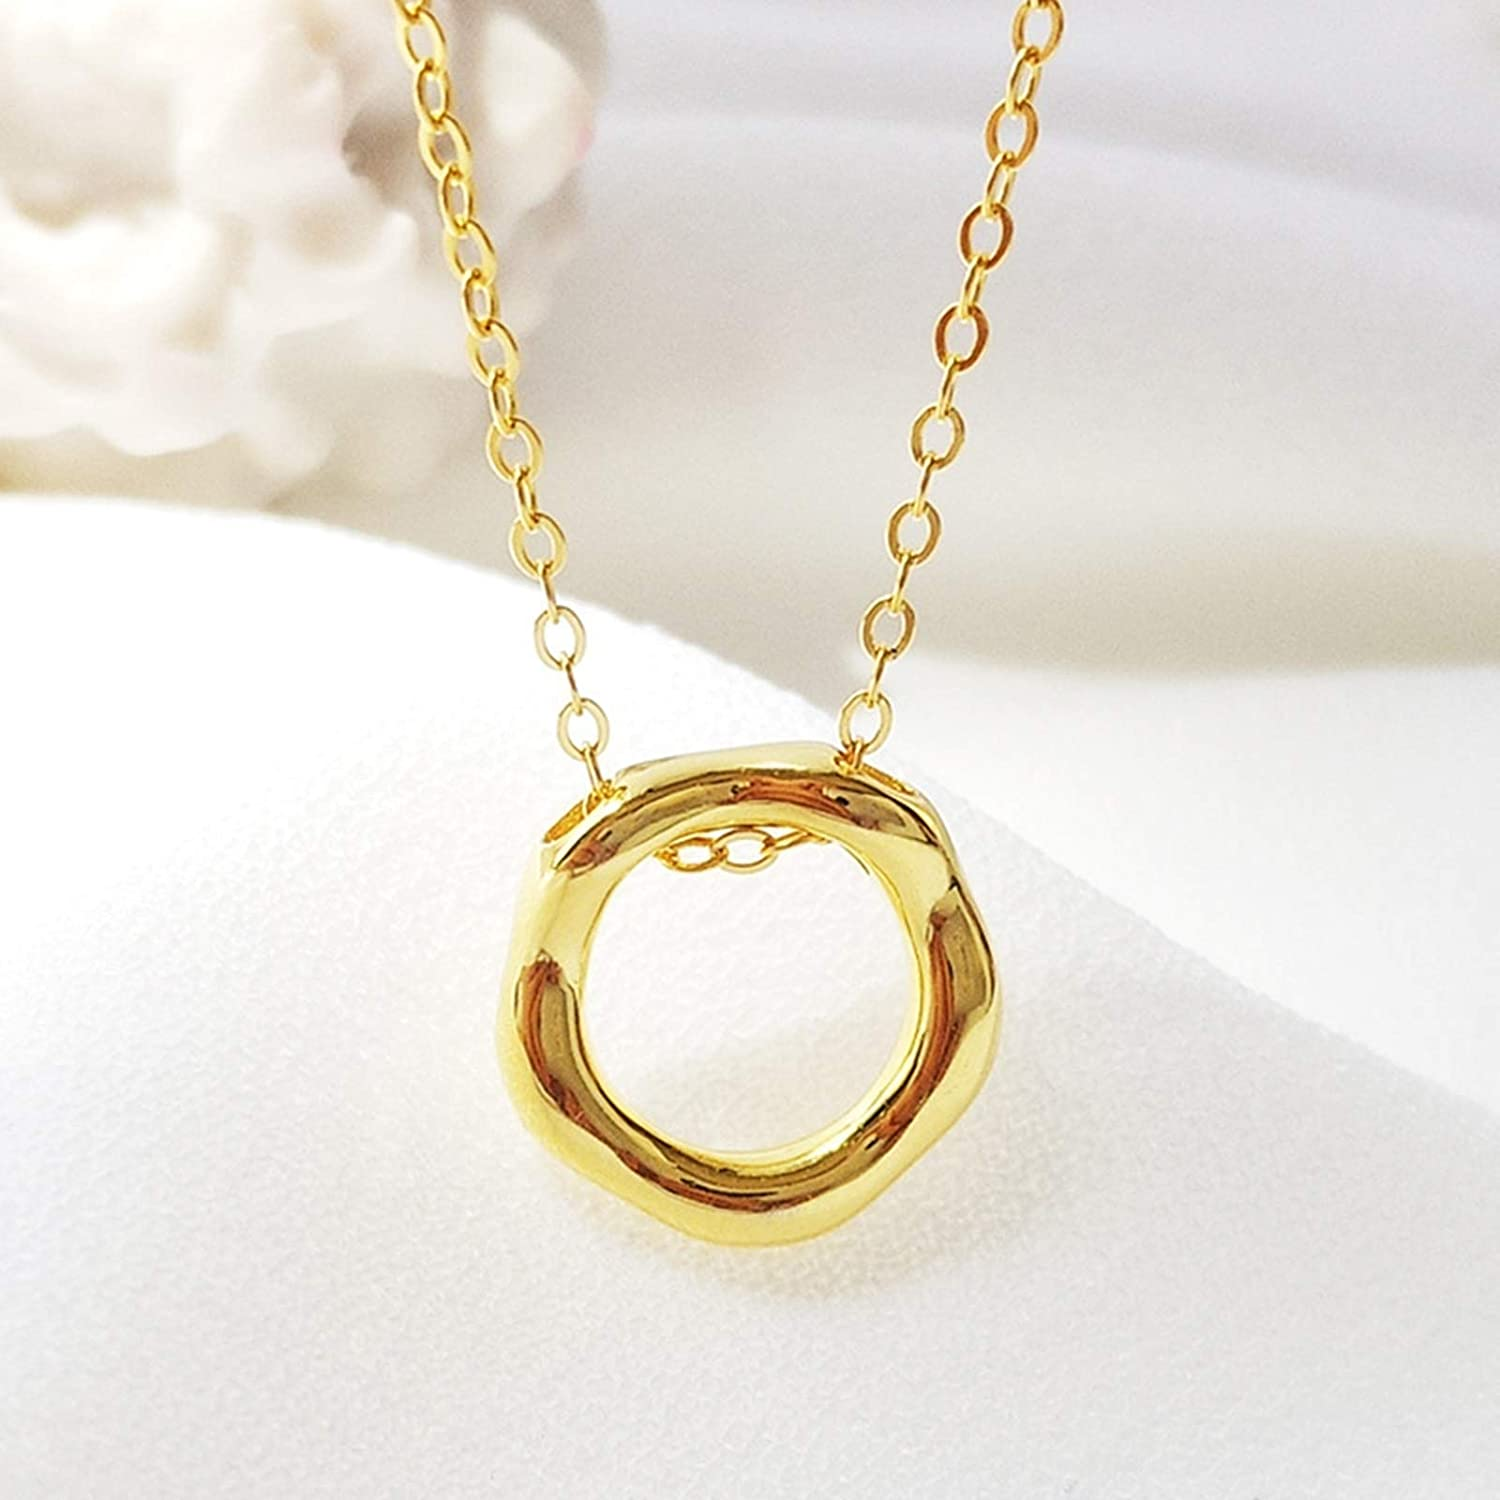 Aokarry Womens S925 Sterling Silver Necklace Hollow Circle Pendant Necklaces for Women Gold